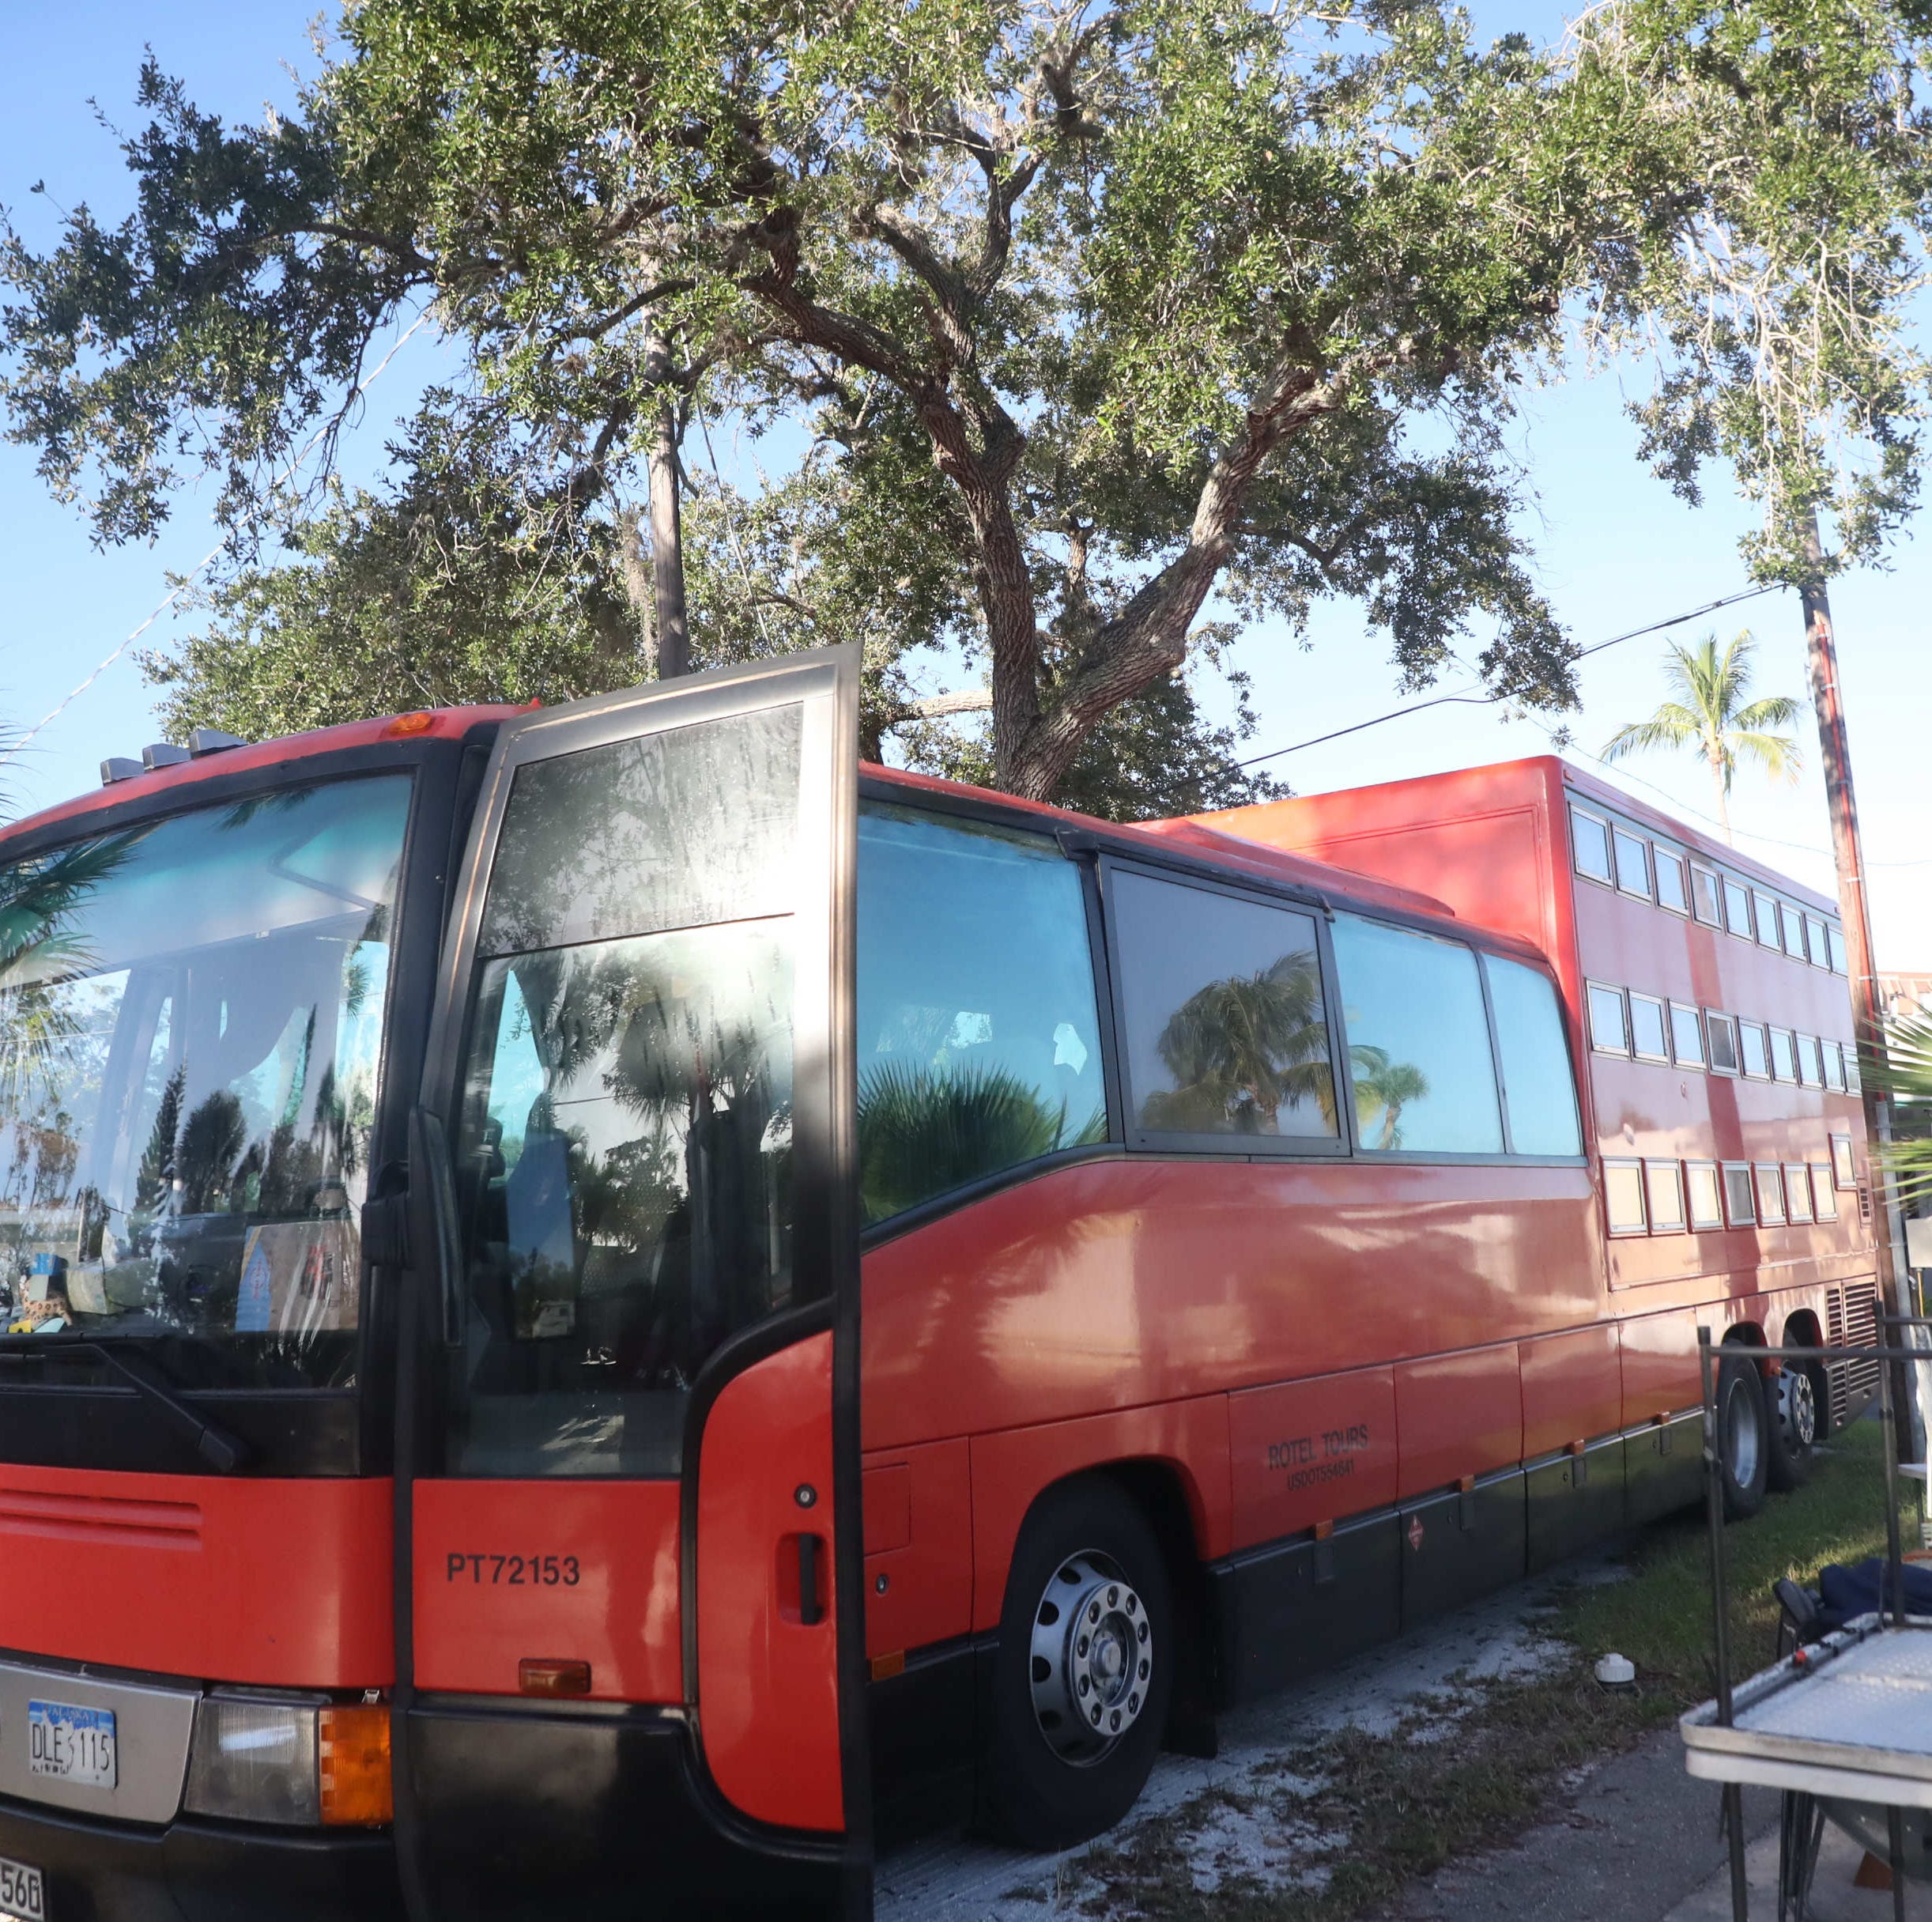 Rotel, the touring German hotel on wheels, rolls to Fort Myers Beach, Sanibel